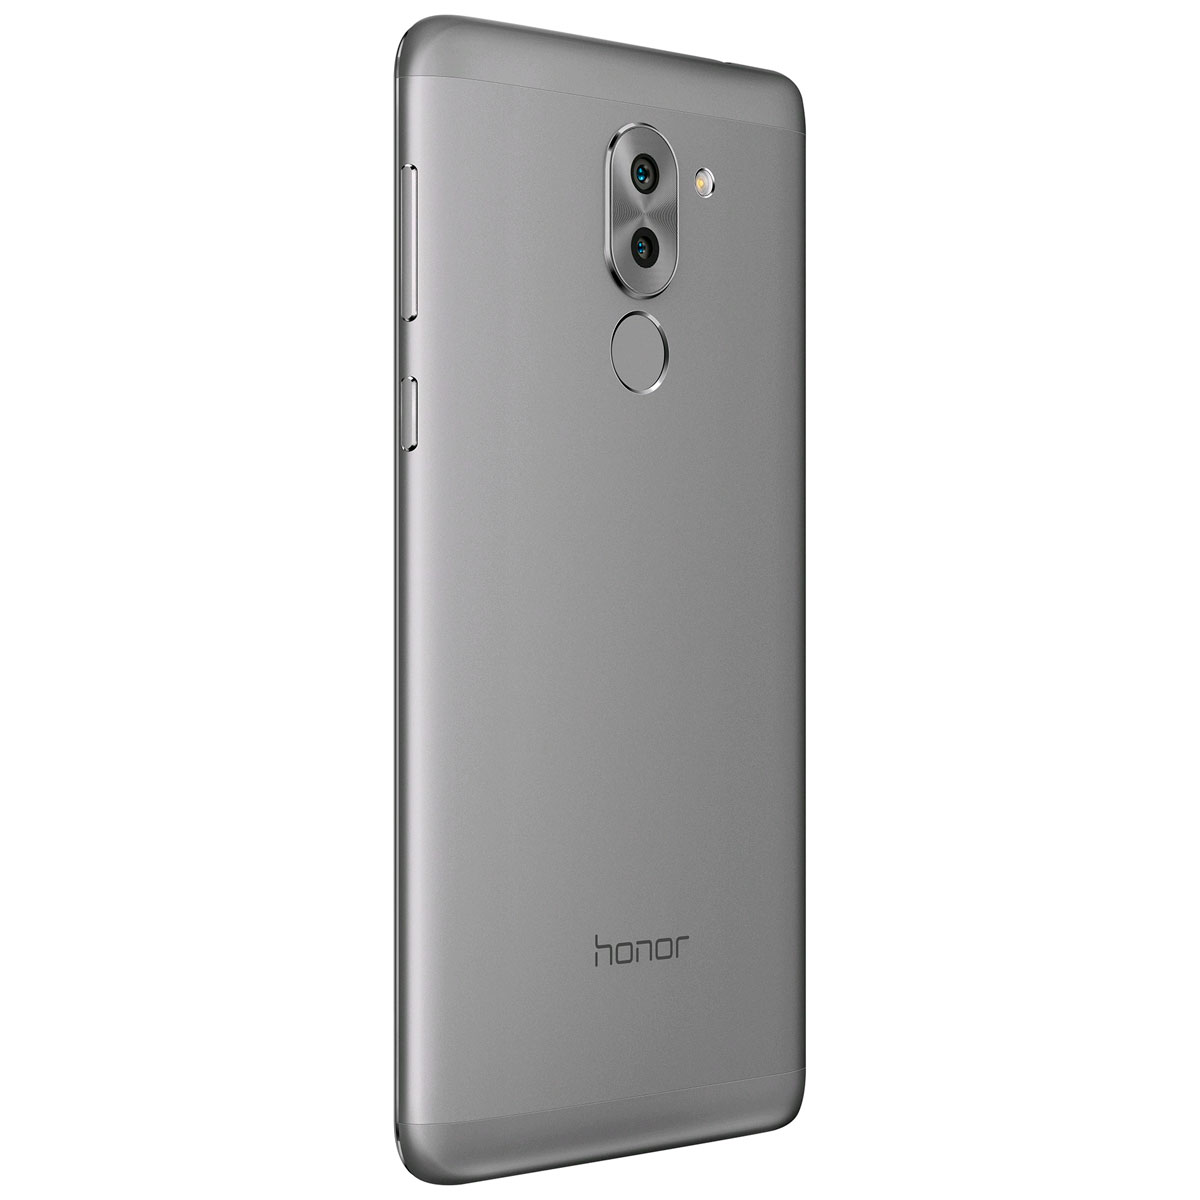 honor 6x trasera lateral